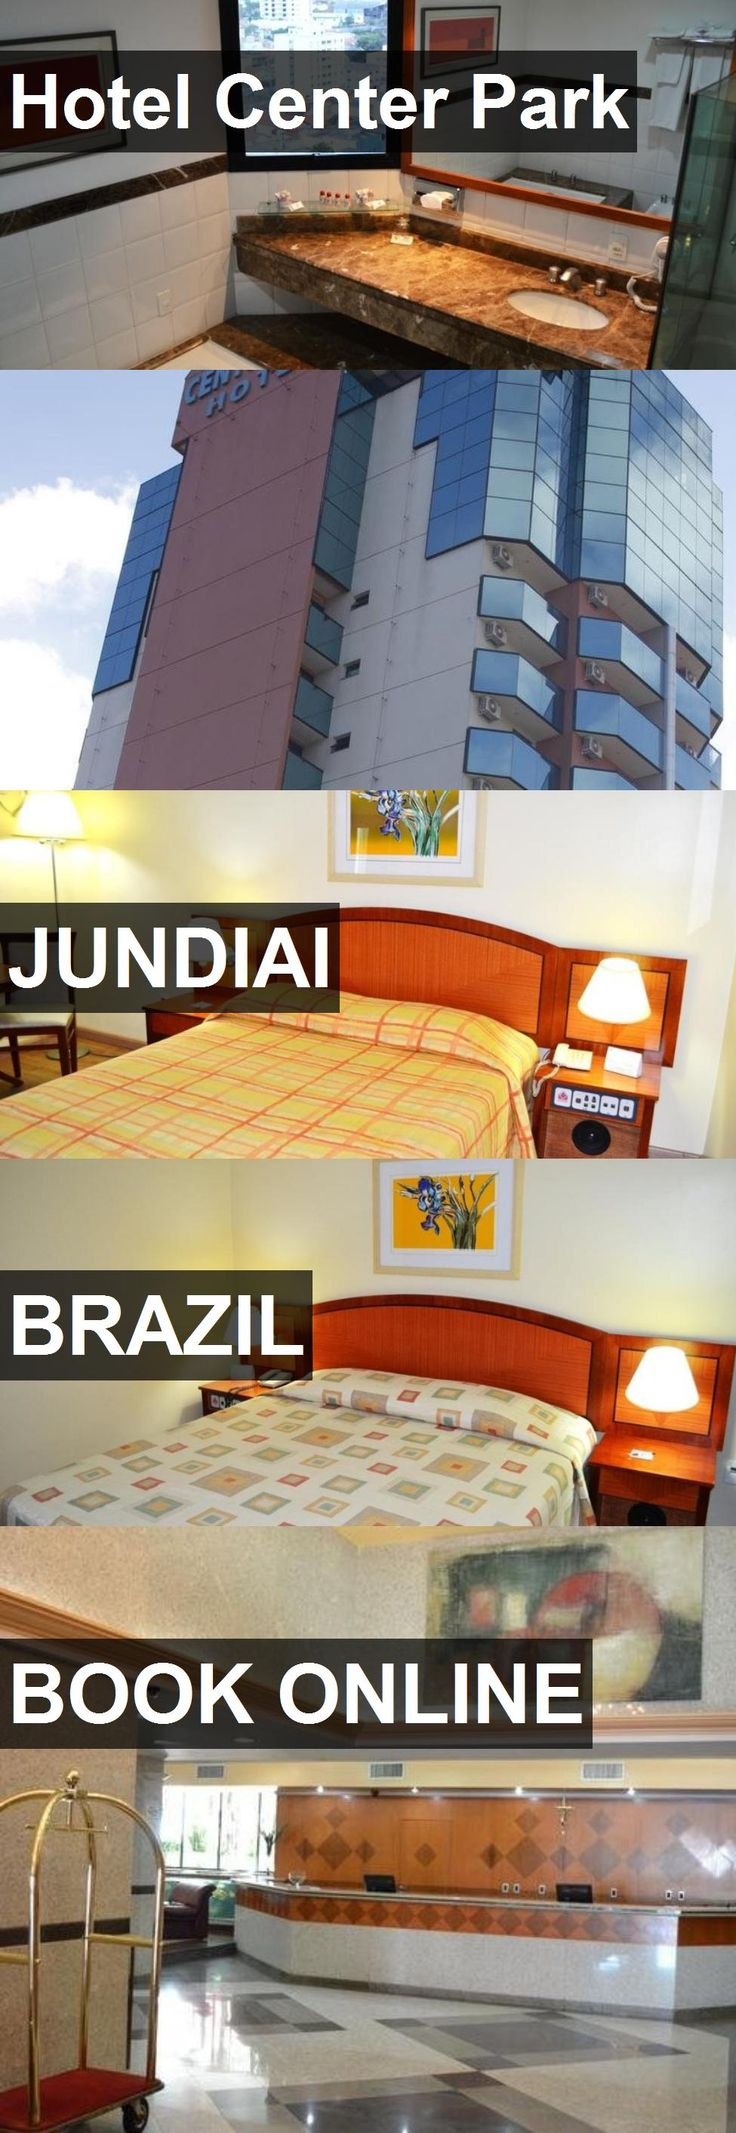 Hotel Hotel Center Park in Jundiai, Brazil. For more information, photos, reviews and best prices please follow the link. #Brazil #Jundiai #hotel #travel #vacation